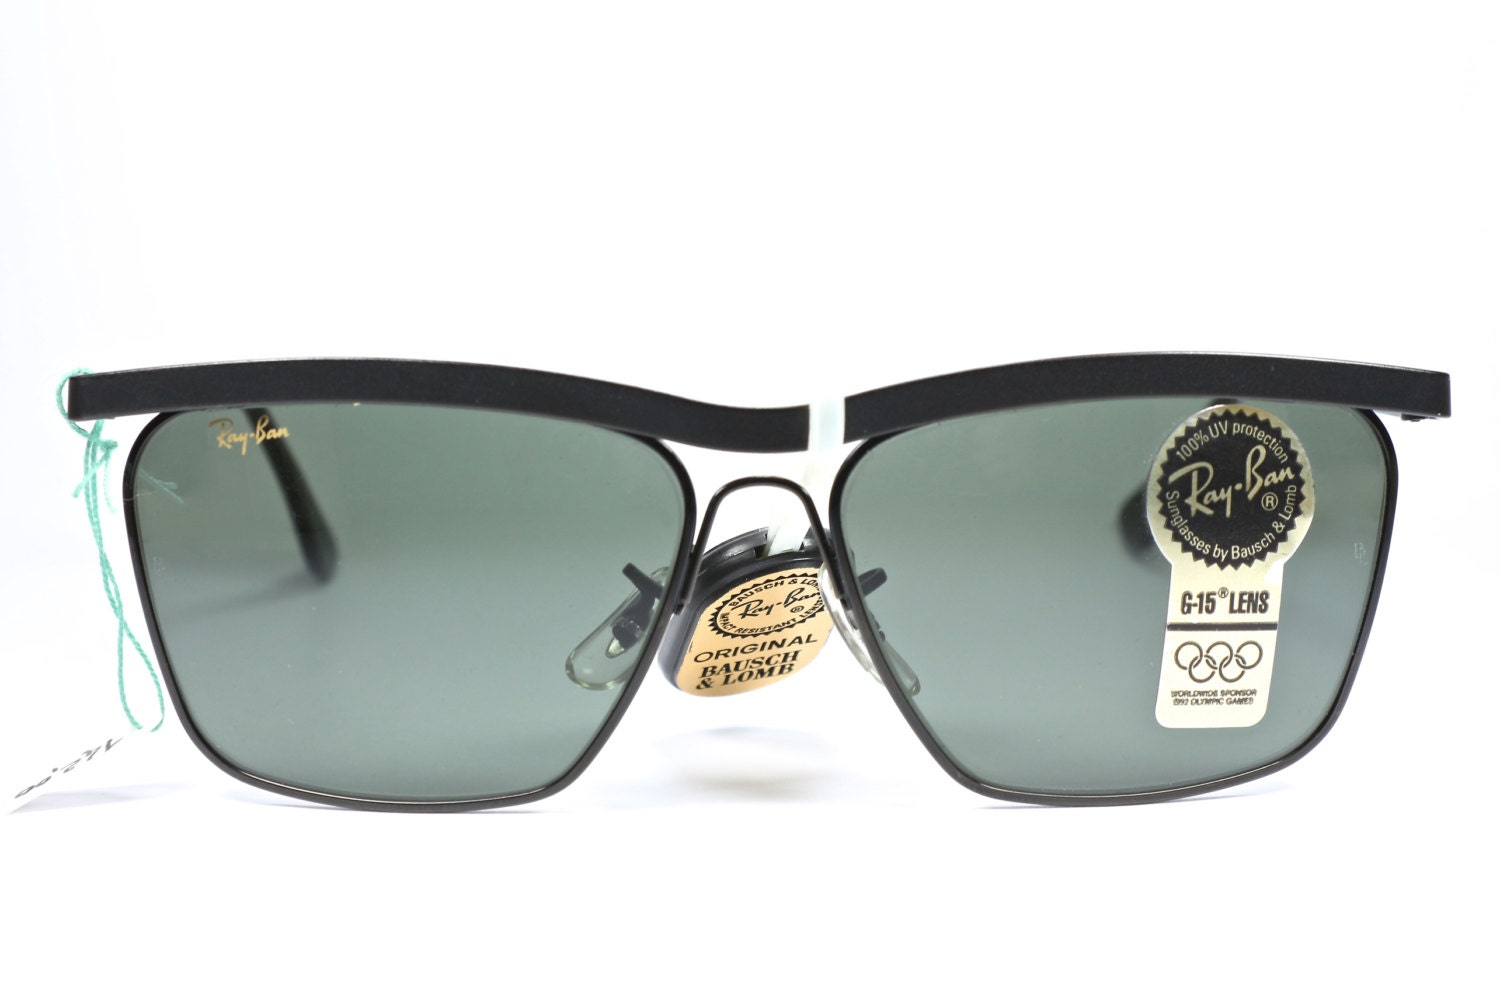 c0bea3004d363 Ray Ban Rb 4057 Matte Black Nails With Gold « Heritage Malta